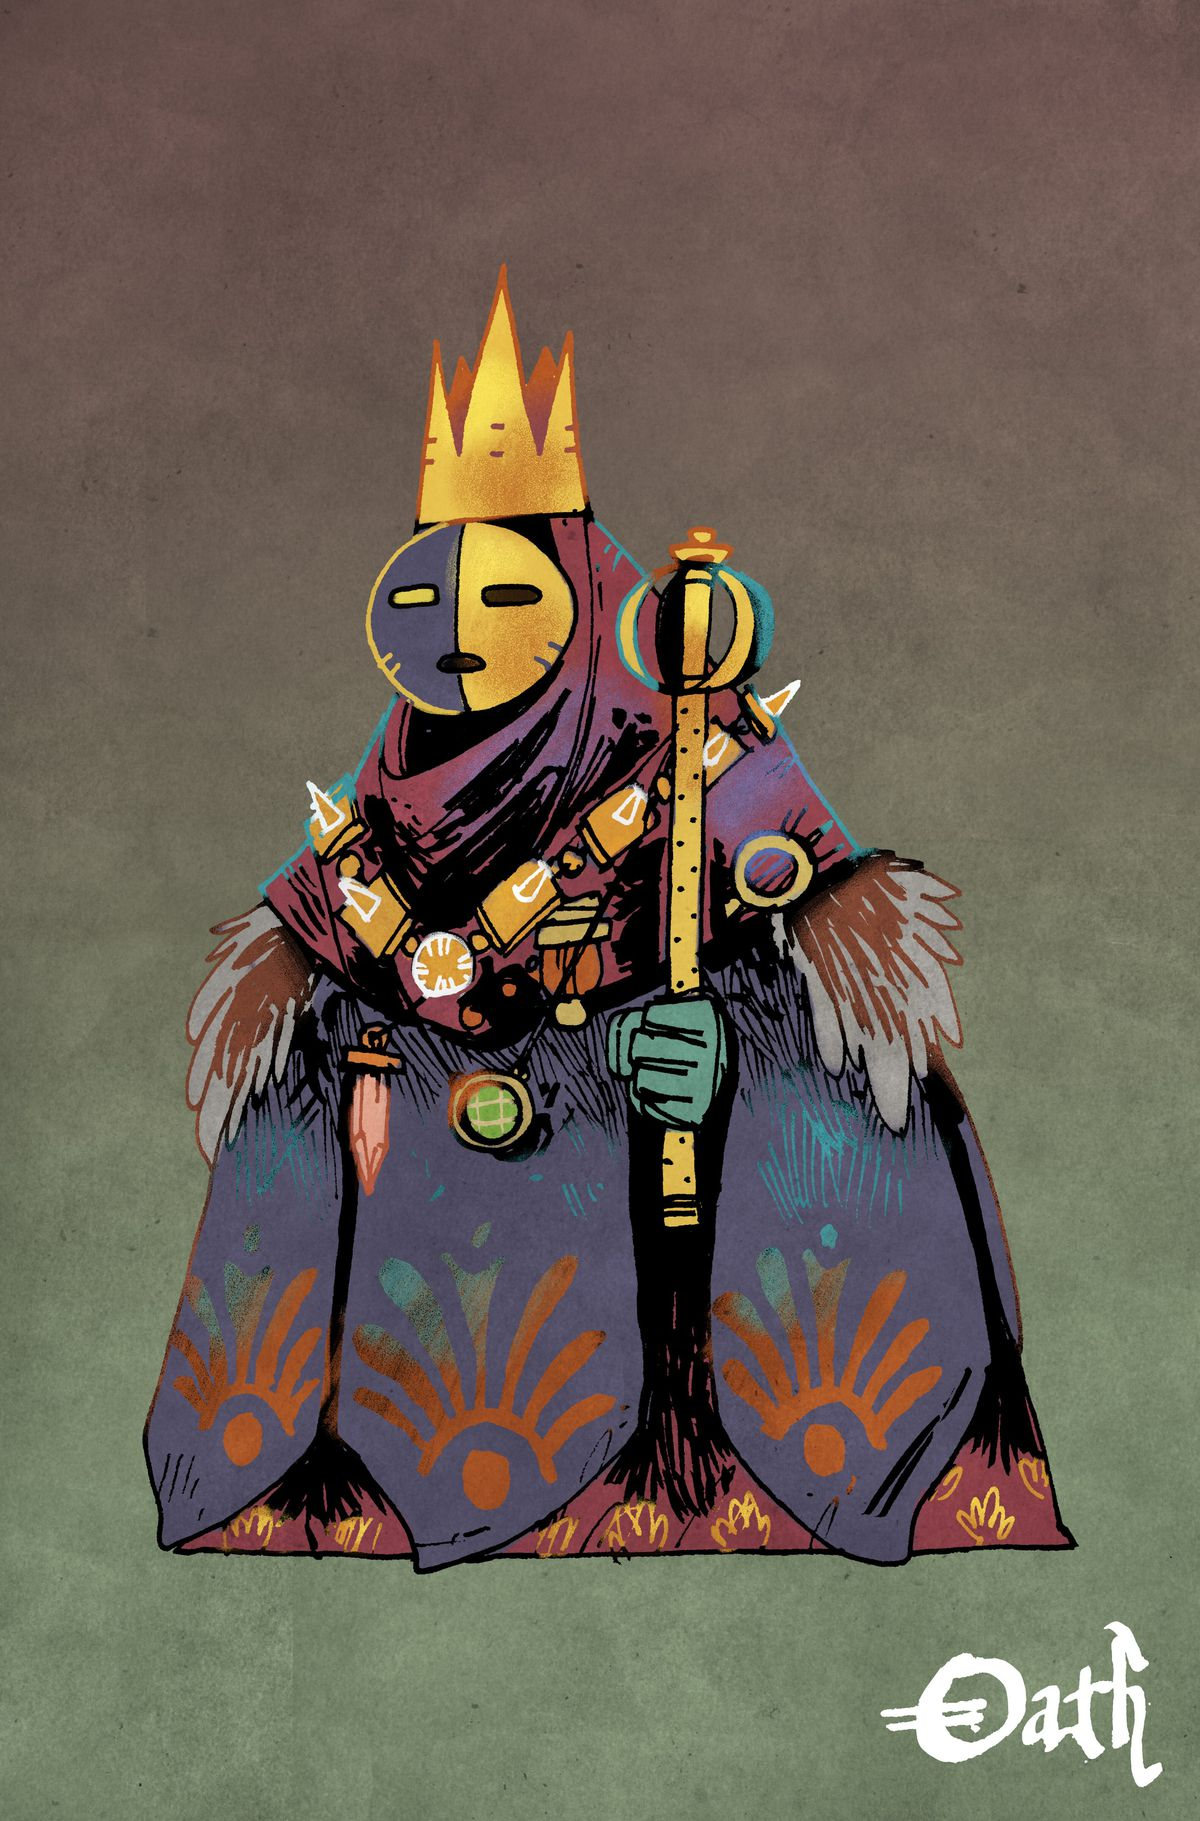 A masked humanoid holding a scepter, clothed in massive heists that otherwise hid his true form.